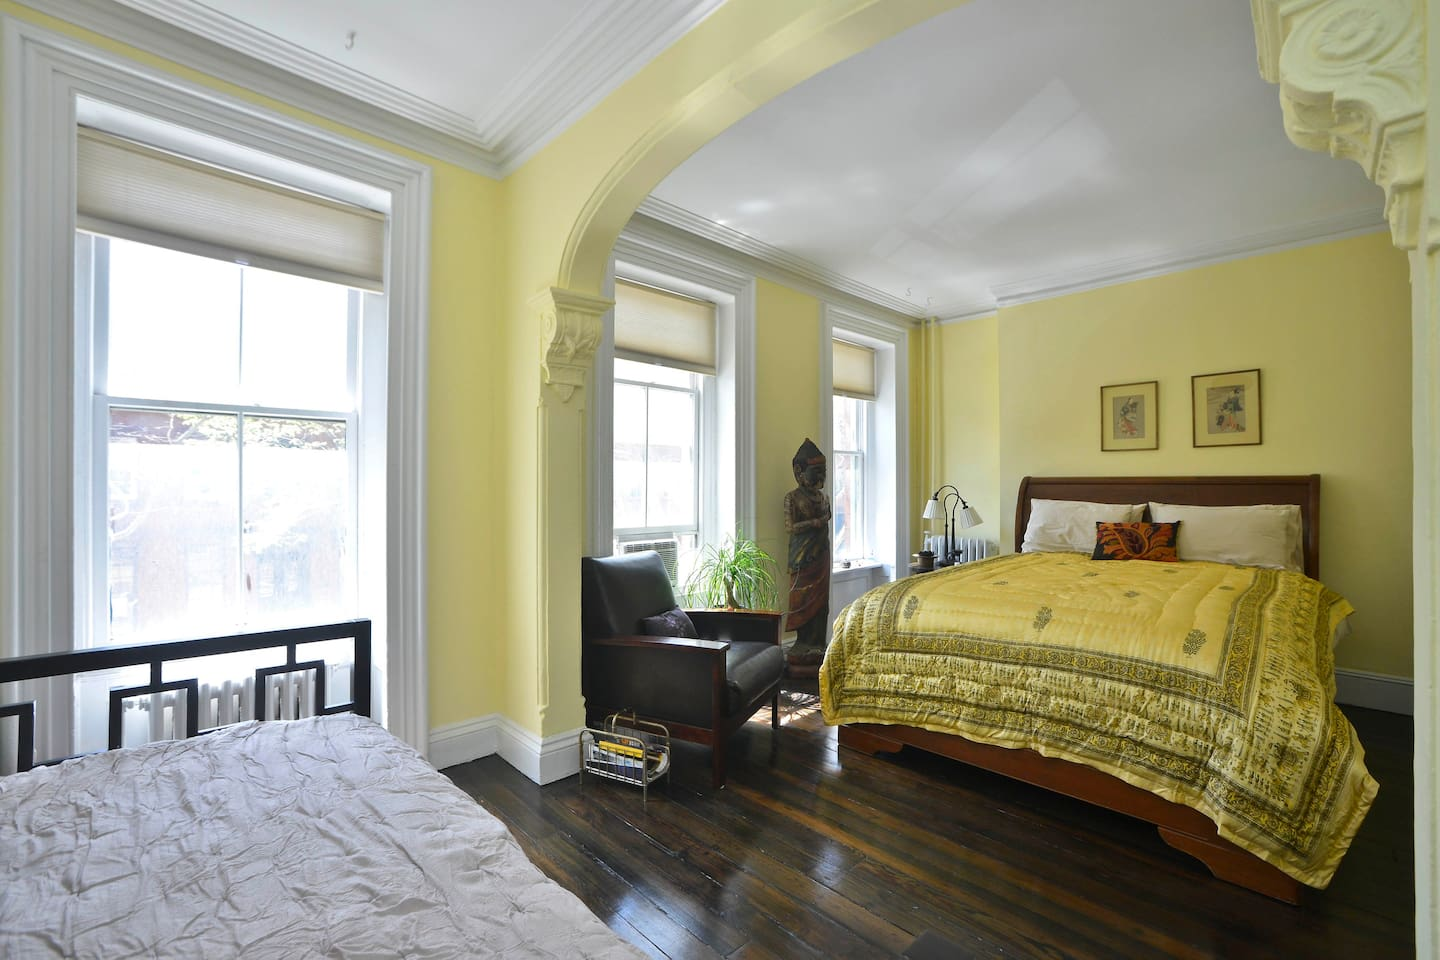 Big, beautiful room with comfy bed. Not quite this yellow.